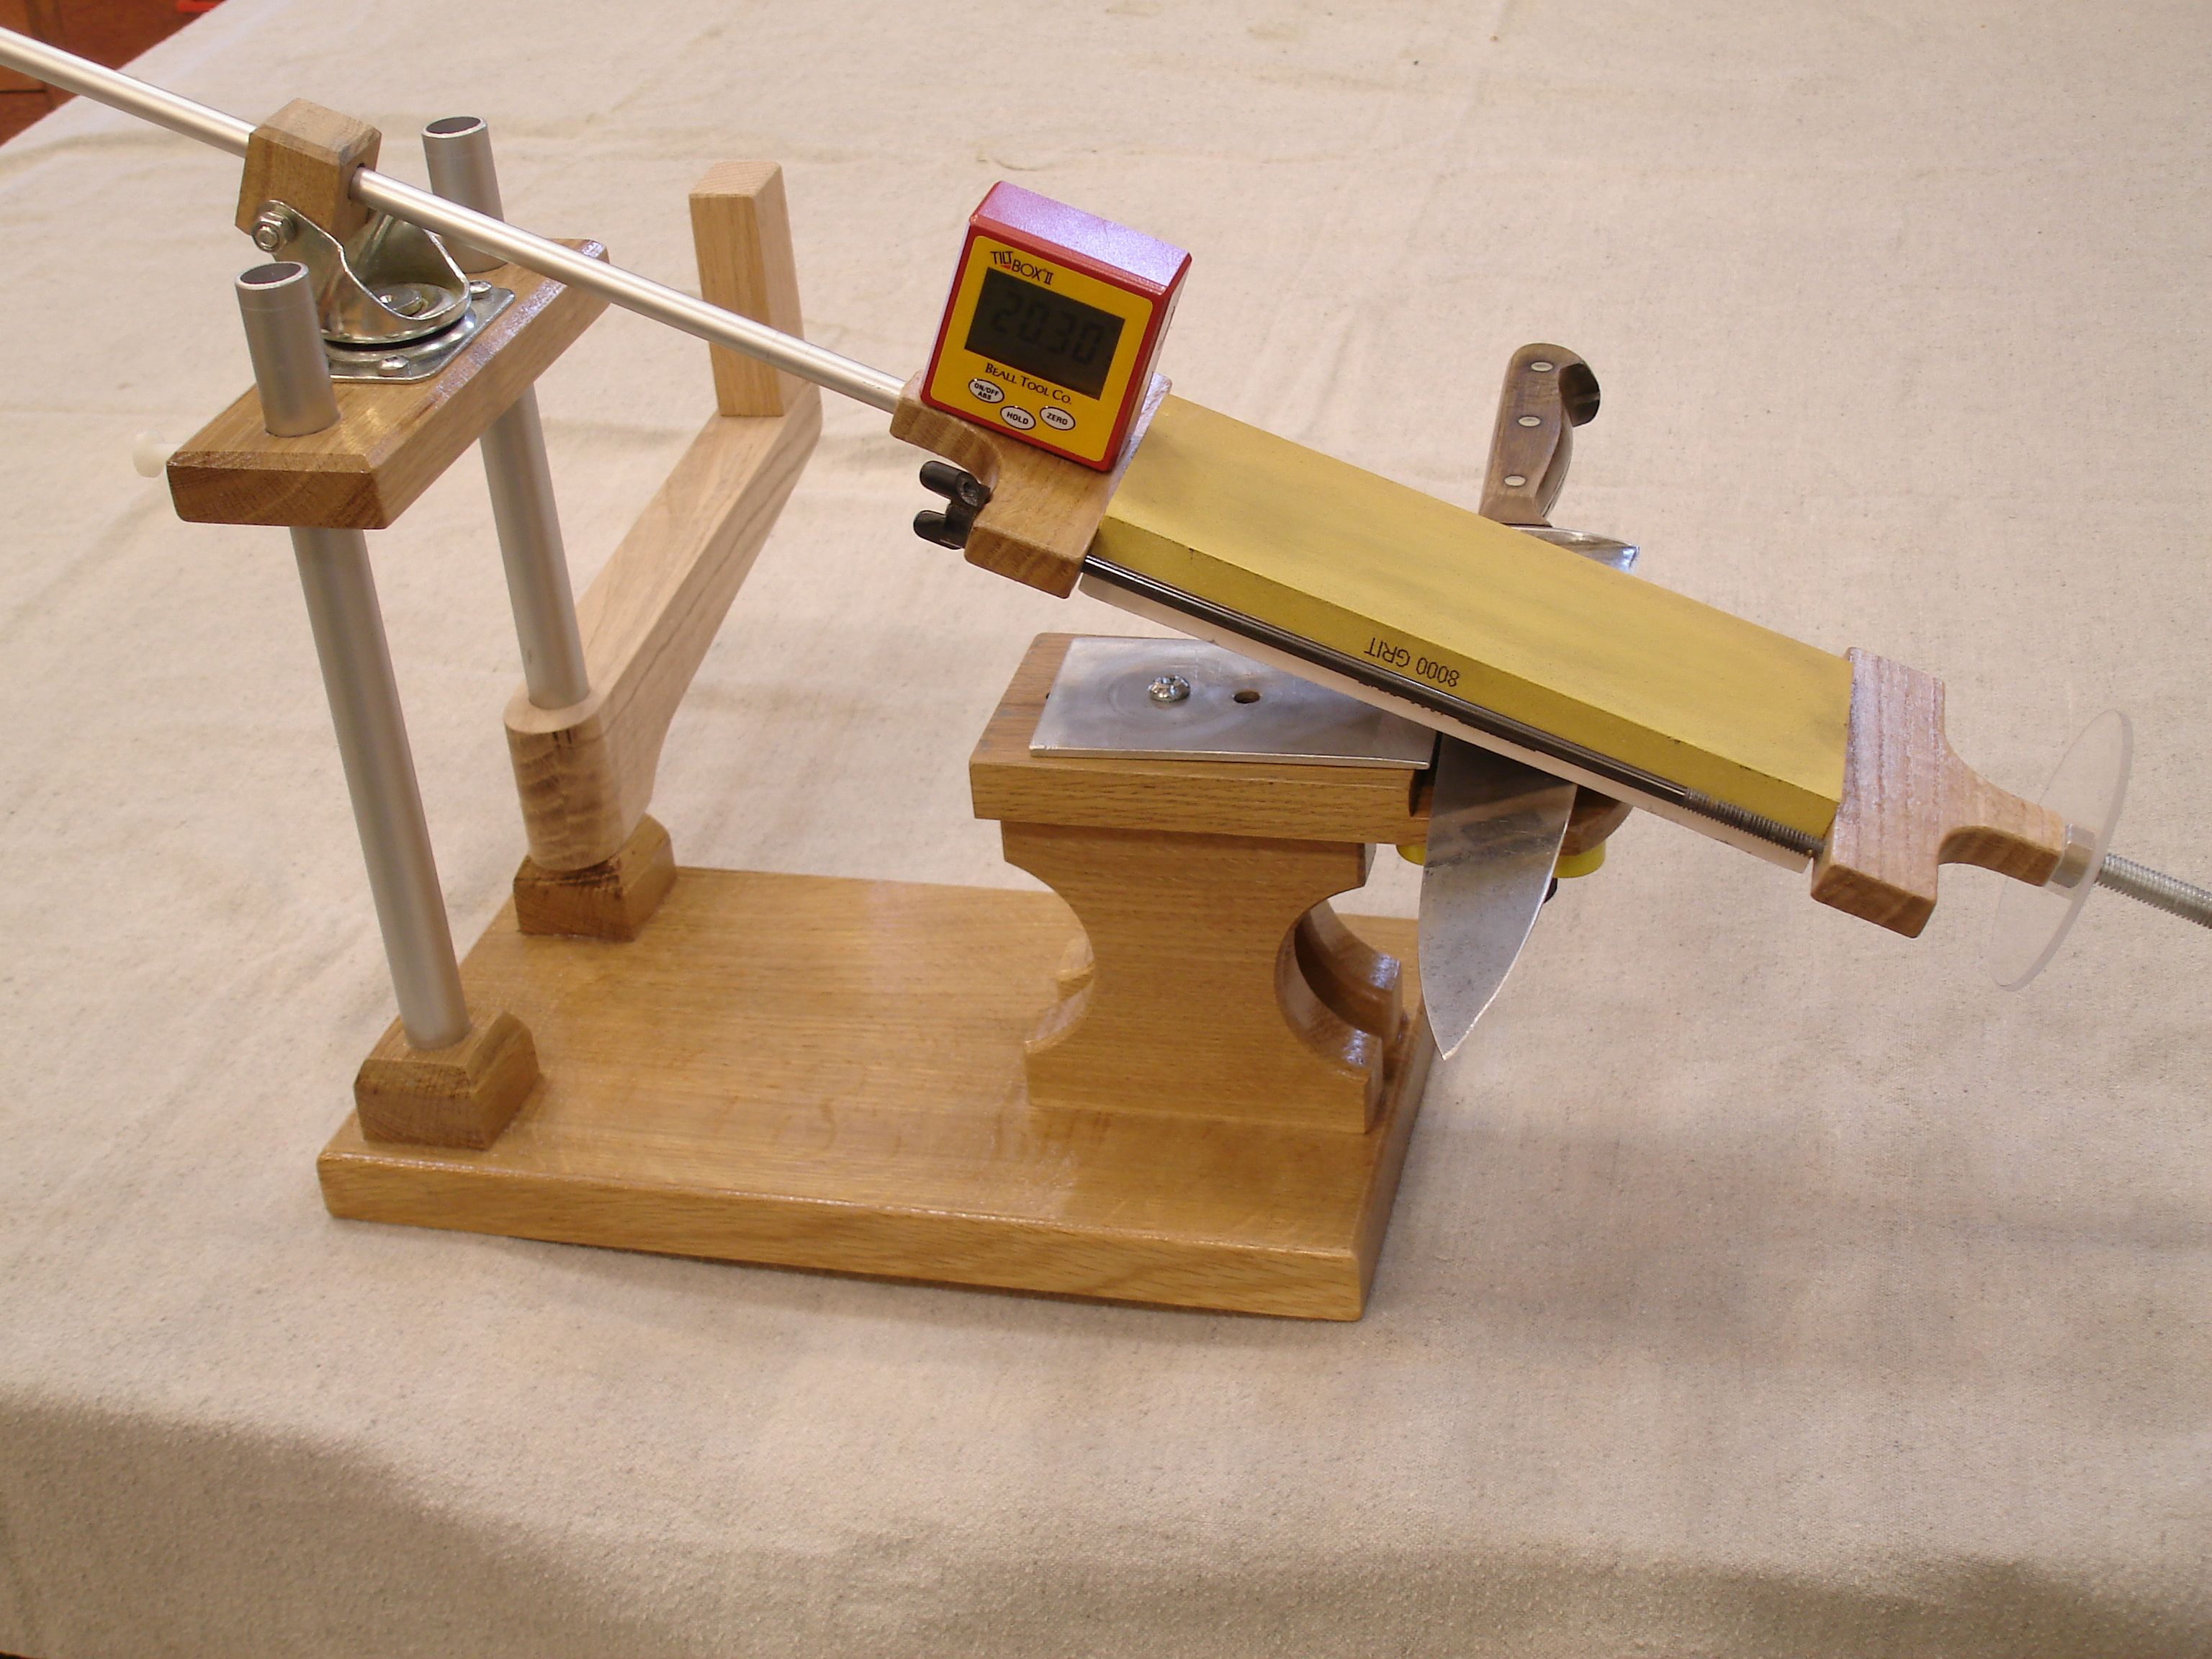 Homemade Sharpening Jig Can T Find The Original Post Just This